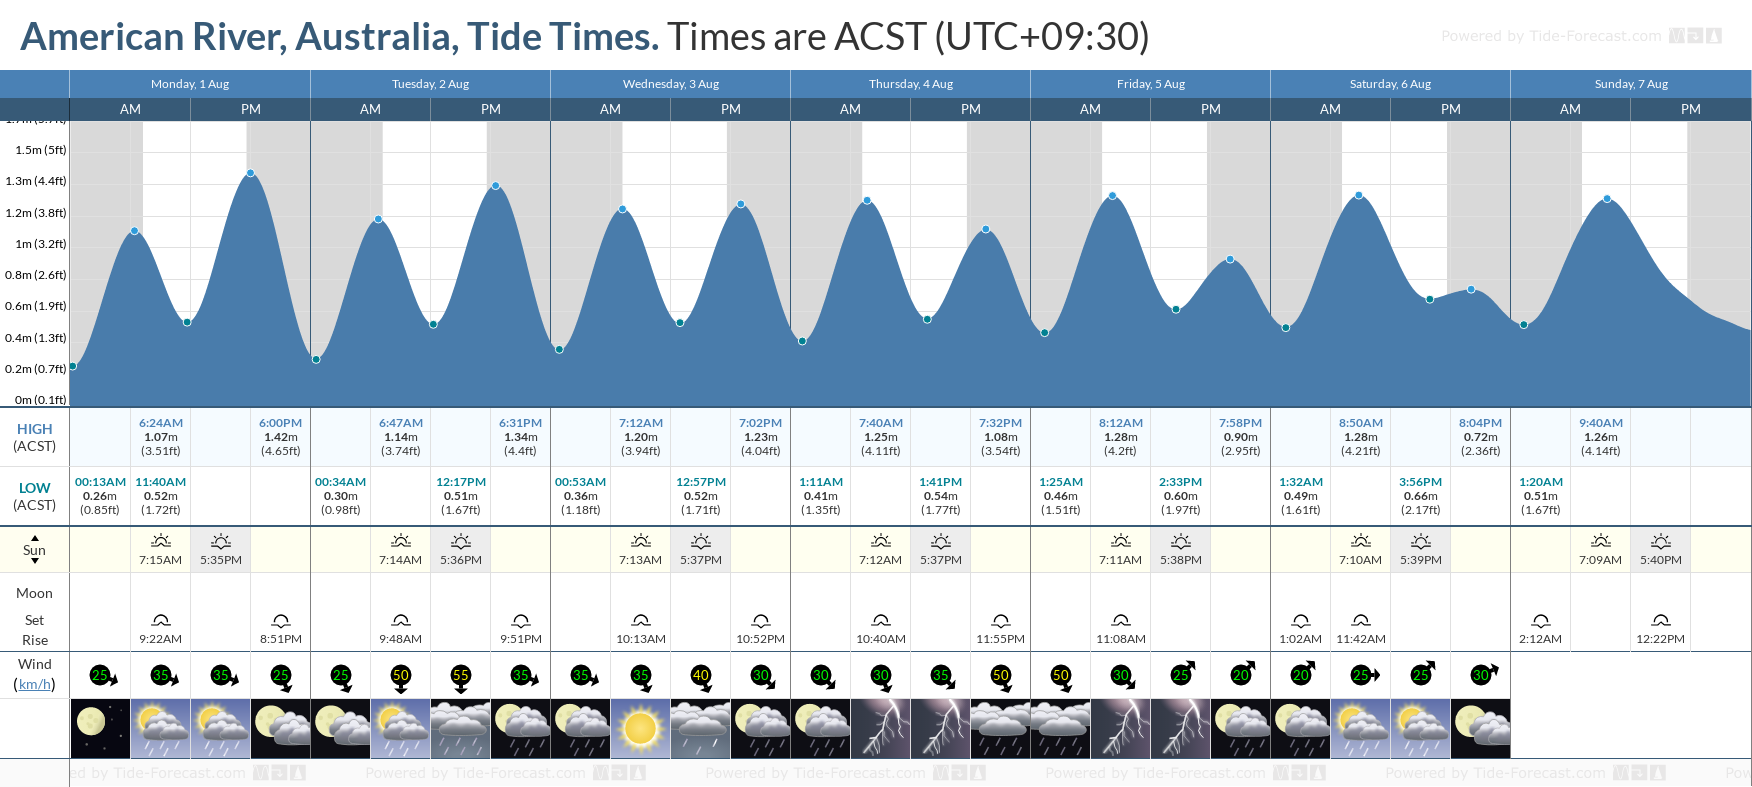 American River, Australia Tide Chart including high and low tide tide times for the next 7 days